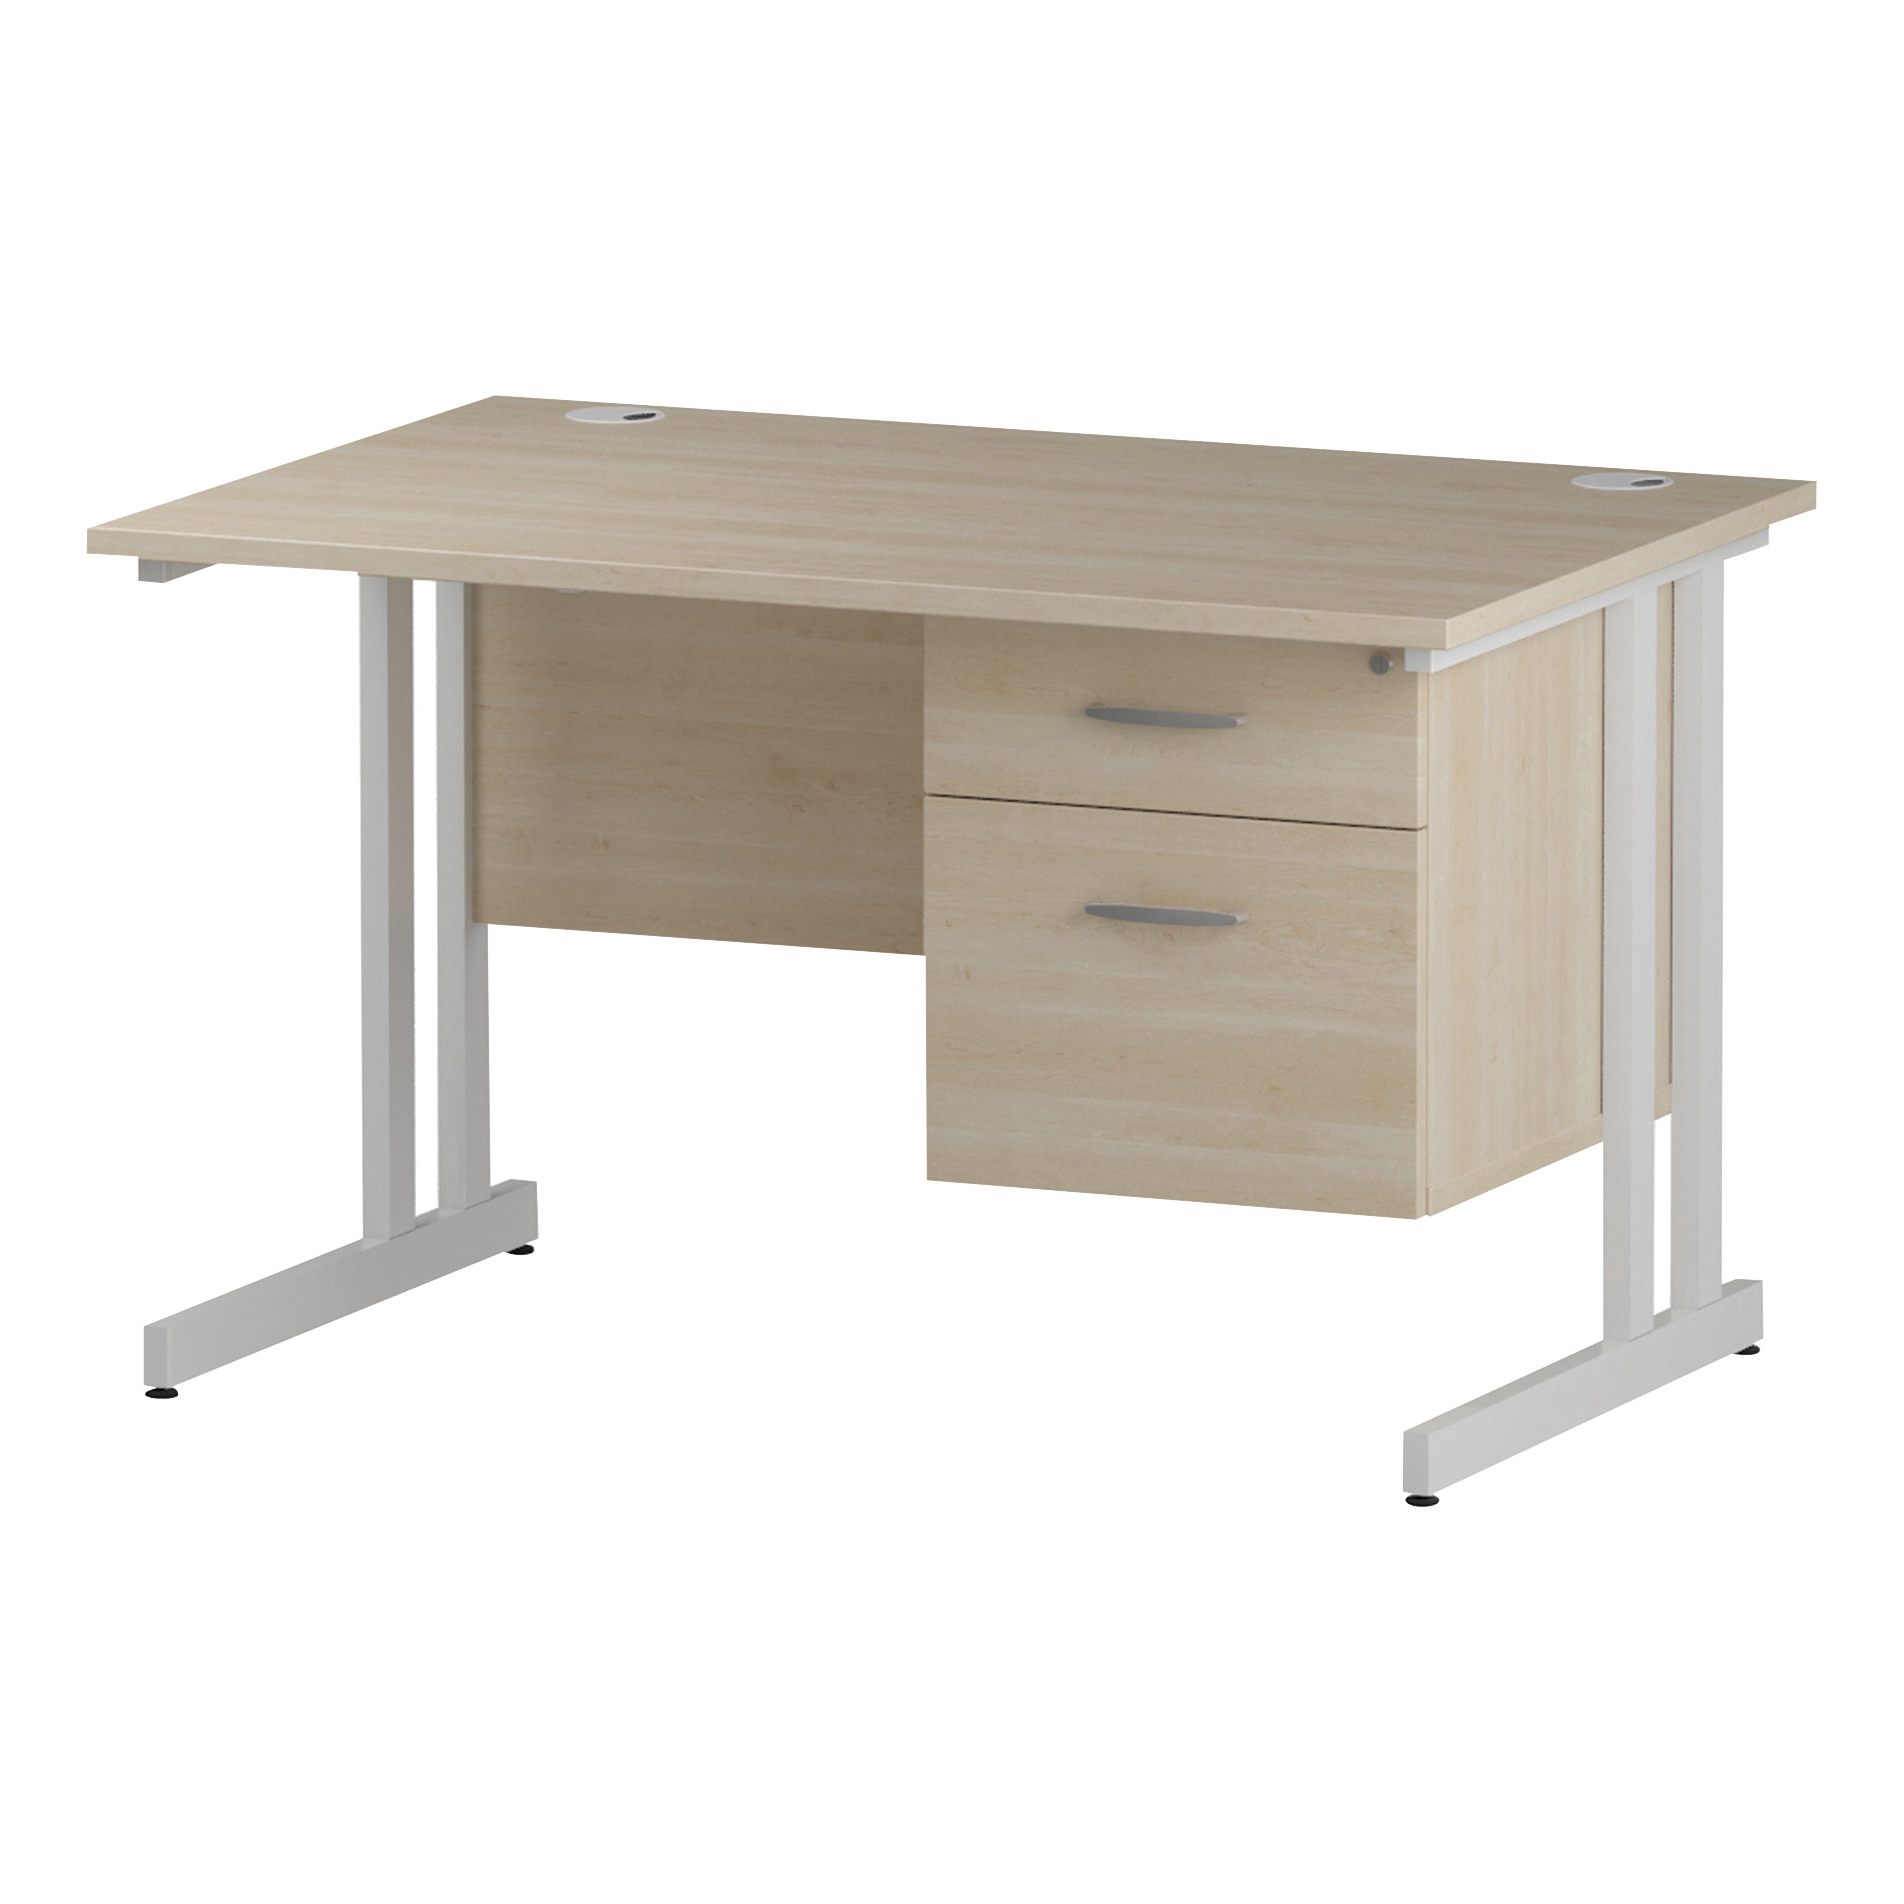 Trexus Rectangular Desk White Cantilever Leg 1200x800mm Fixed Pedestal 2 Drawers Maple Ref I002435